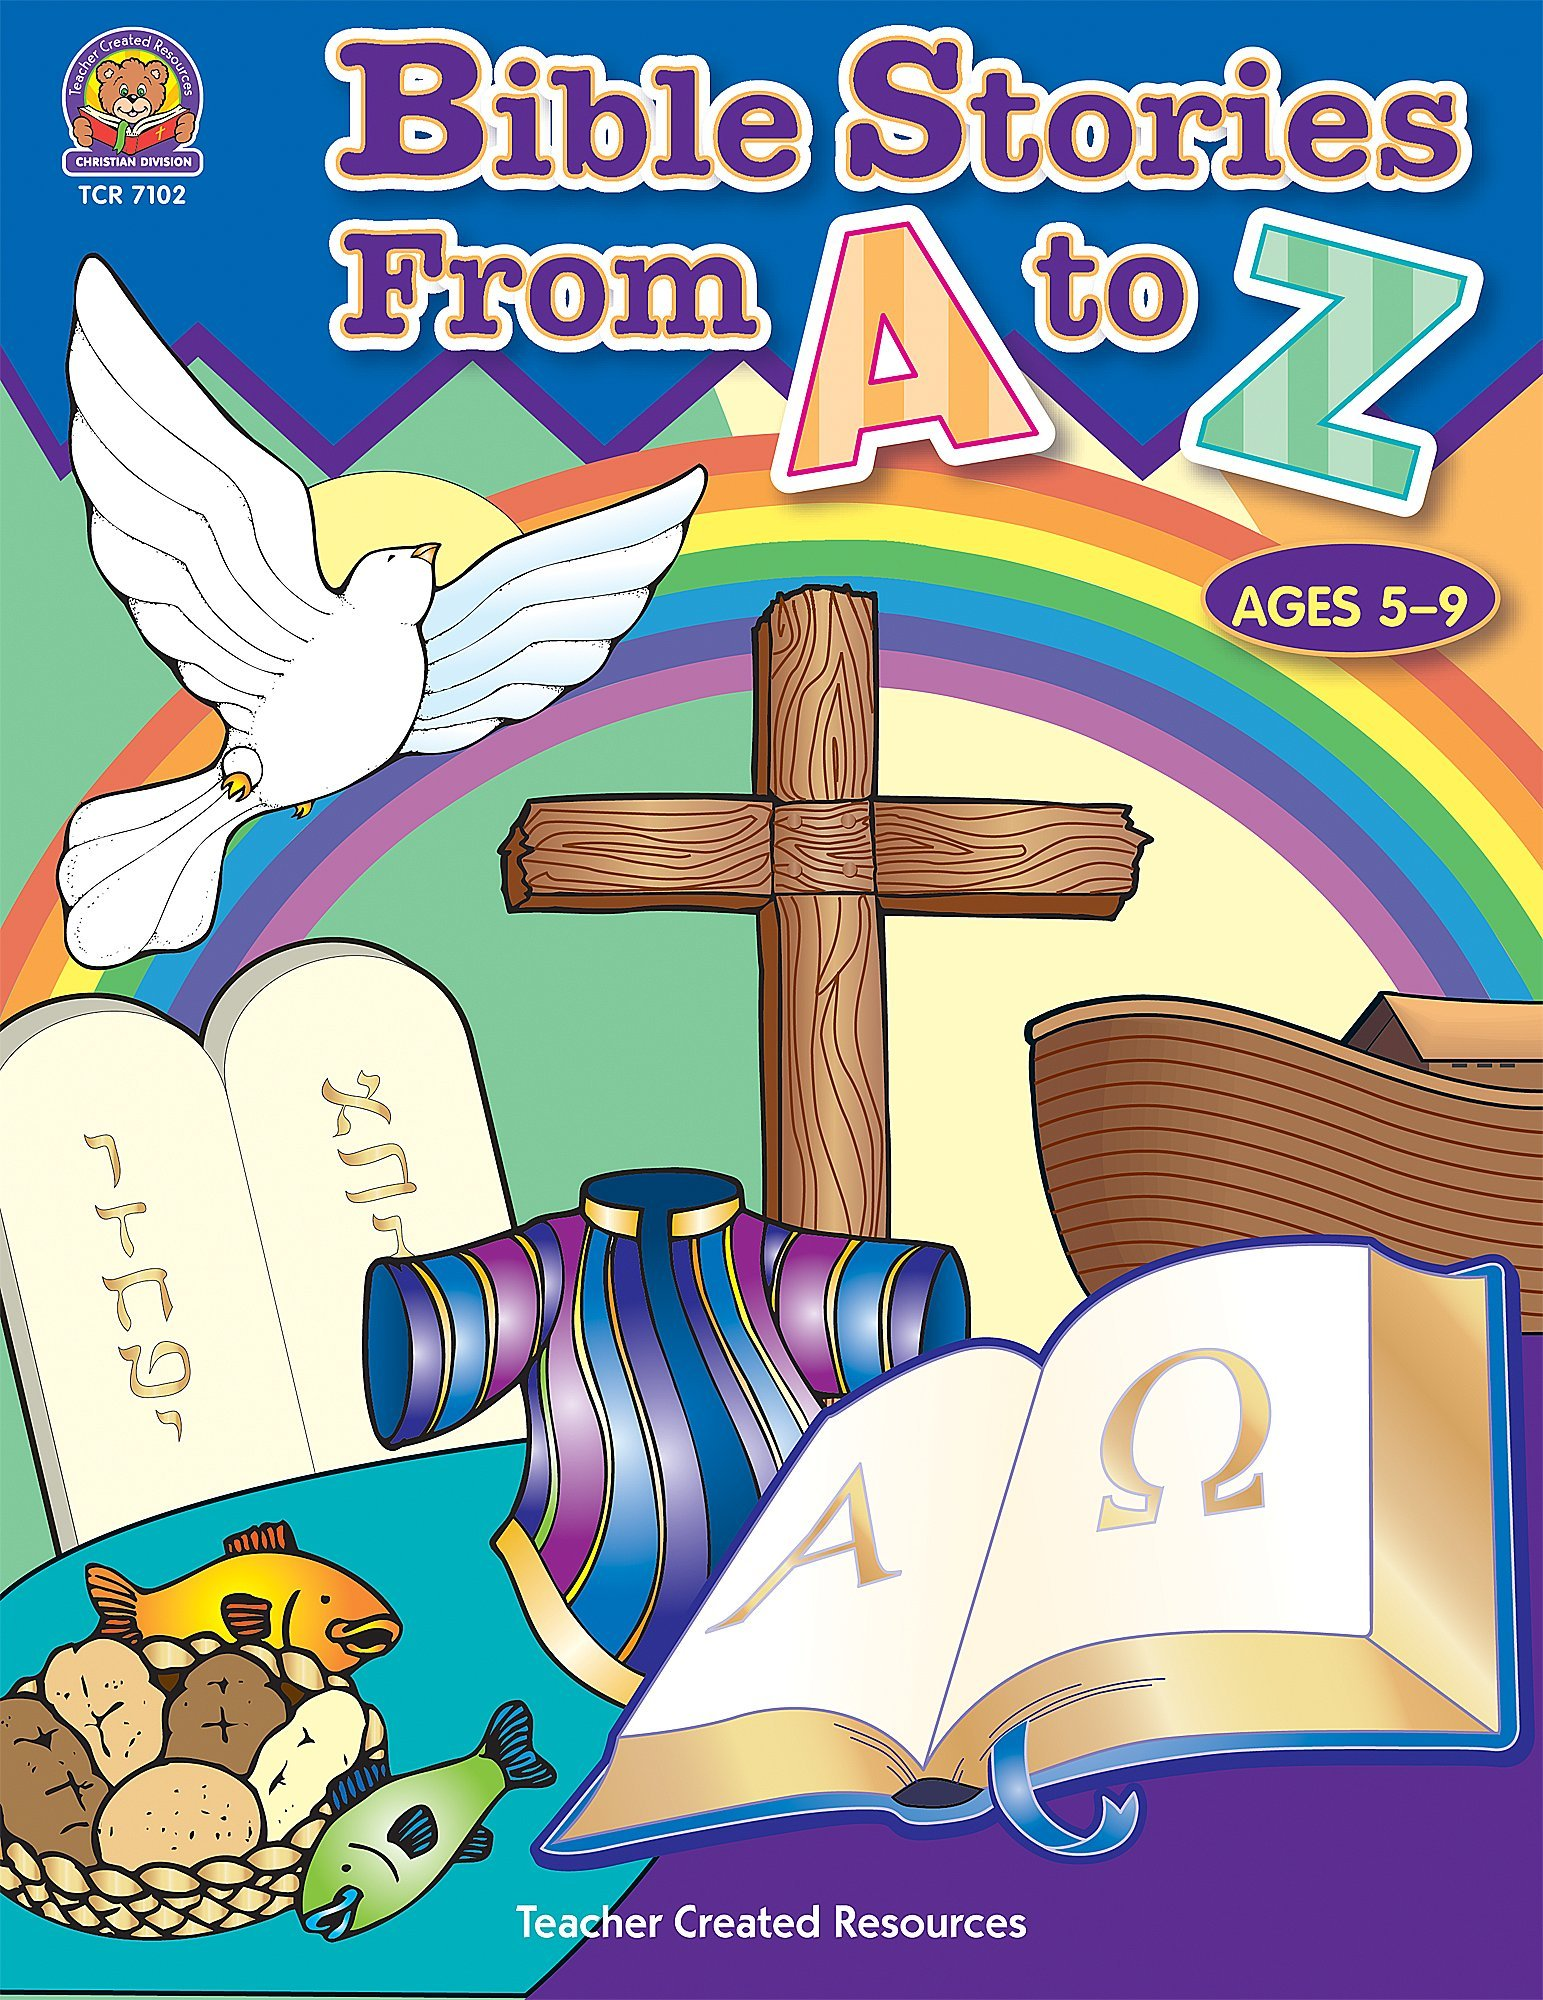 Bible Stories from A-Z (Christian Books) PDF Text fb2 ebook